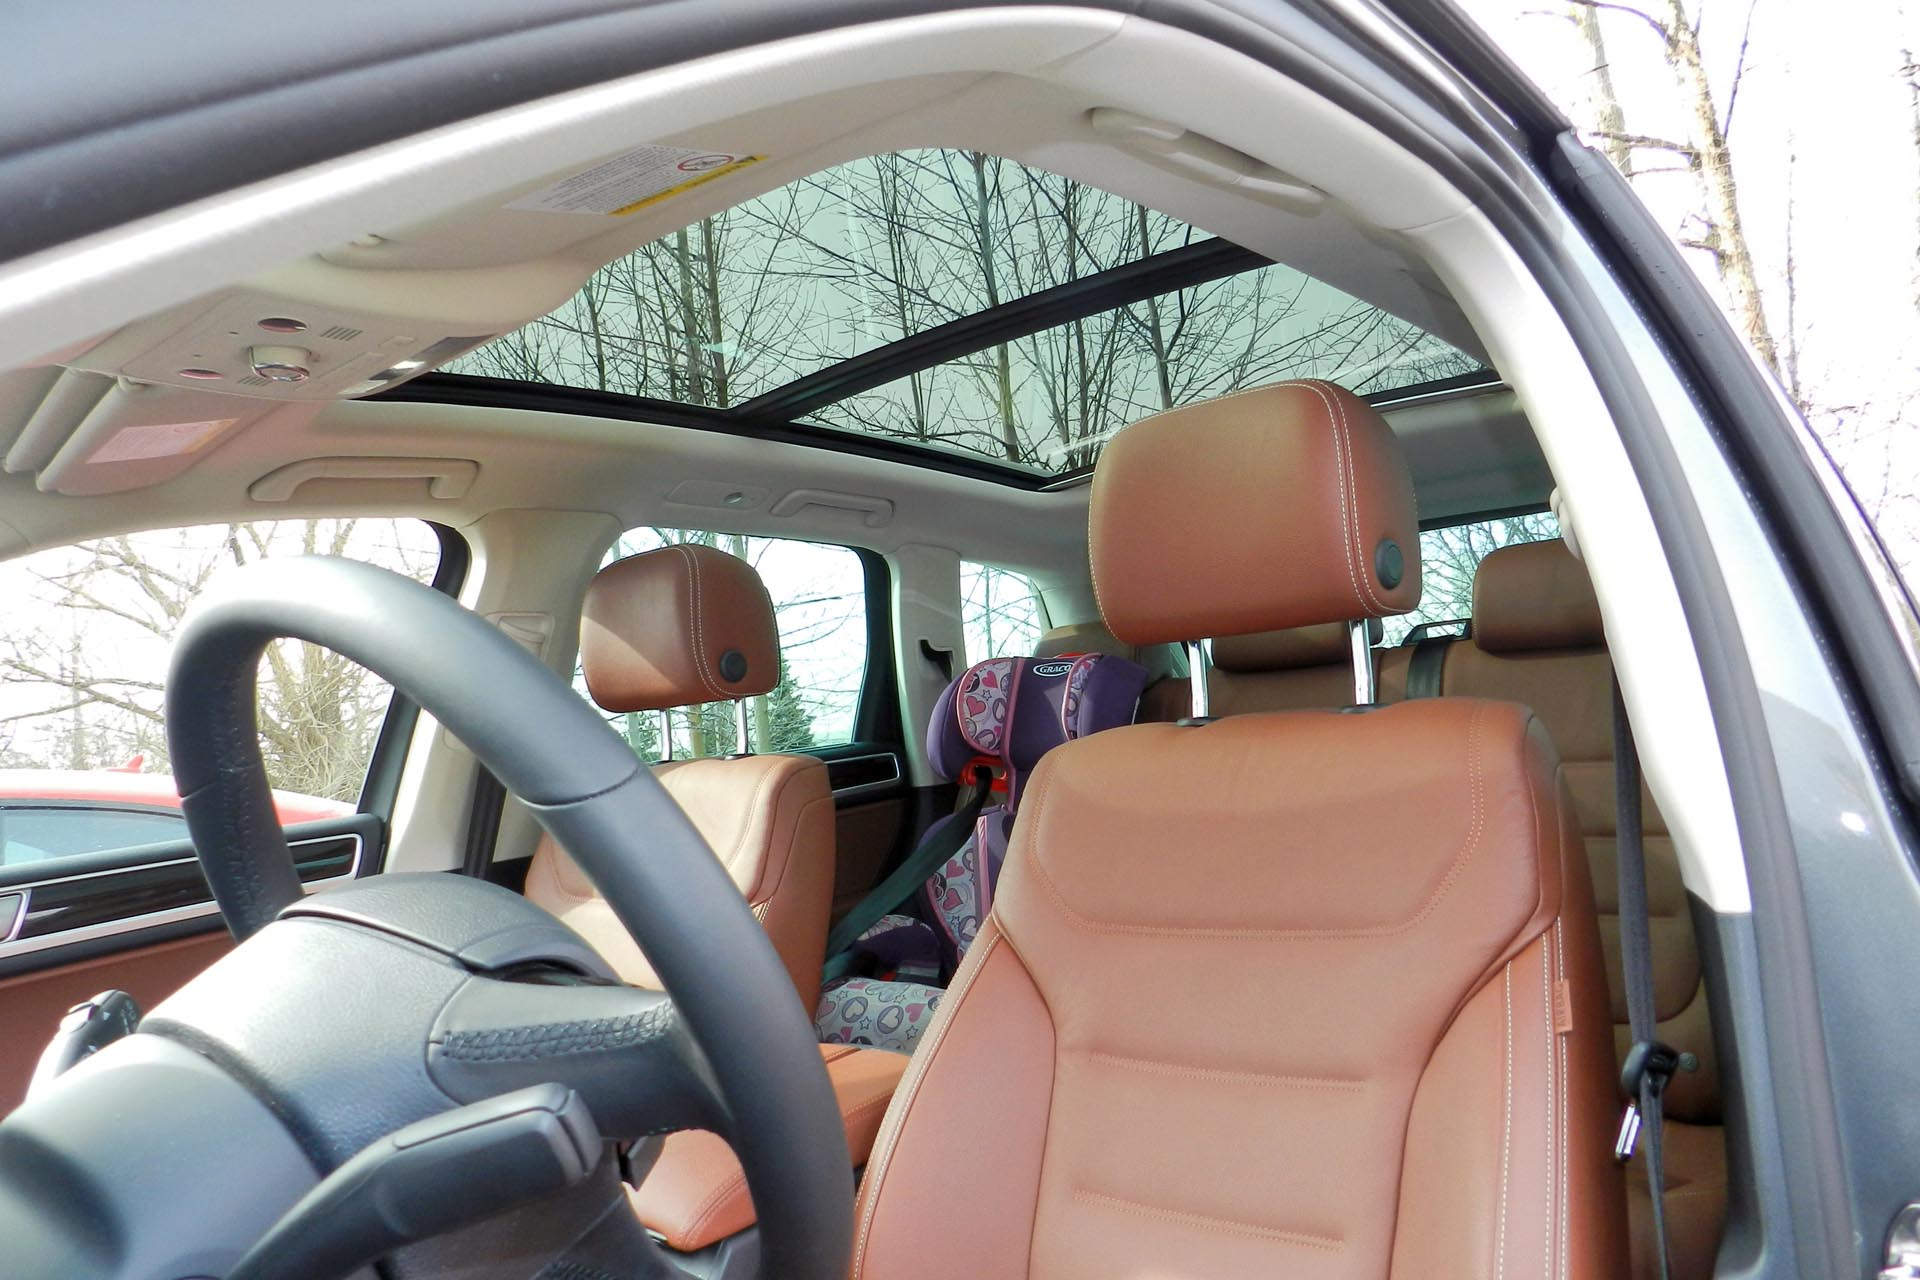 Mazda Cx 5 Panoramic Sunroof The Truth About Panoramic Glass Sunroof Problems Auto Cleanmpg